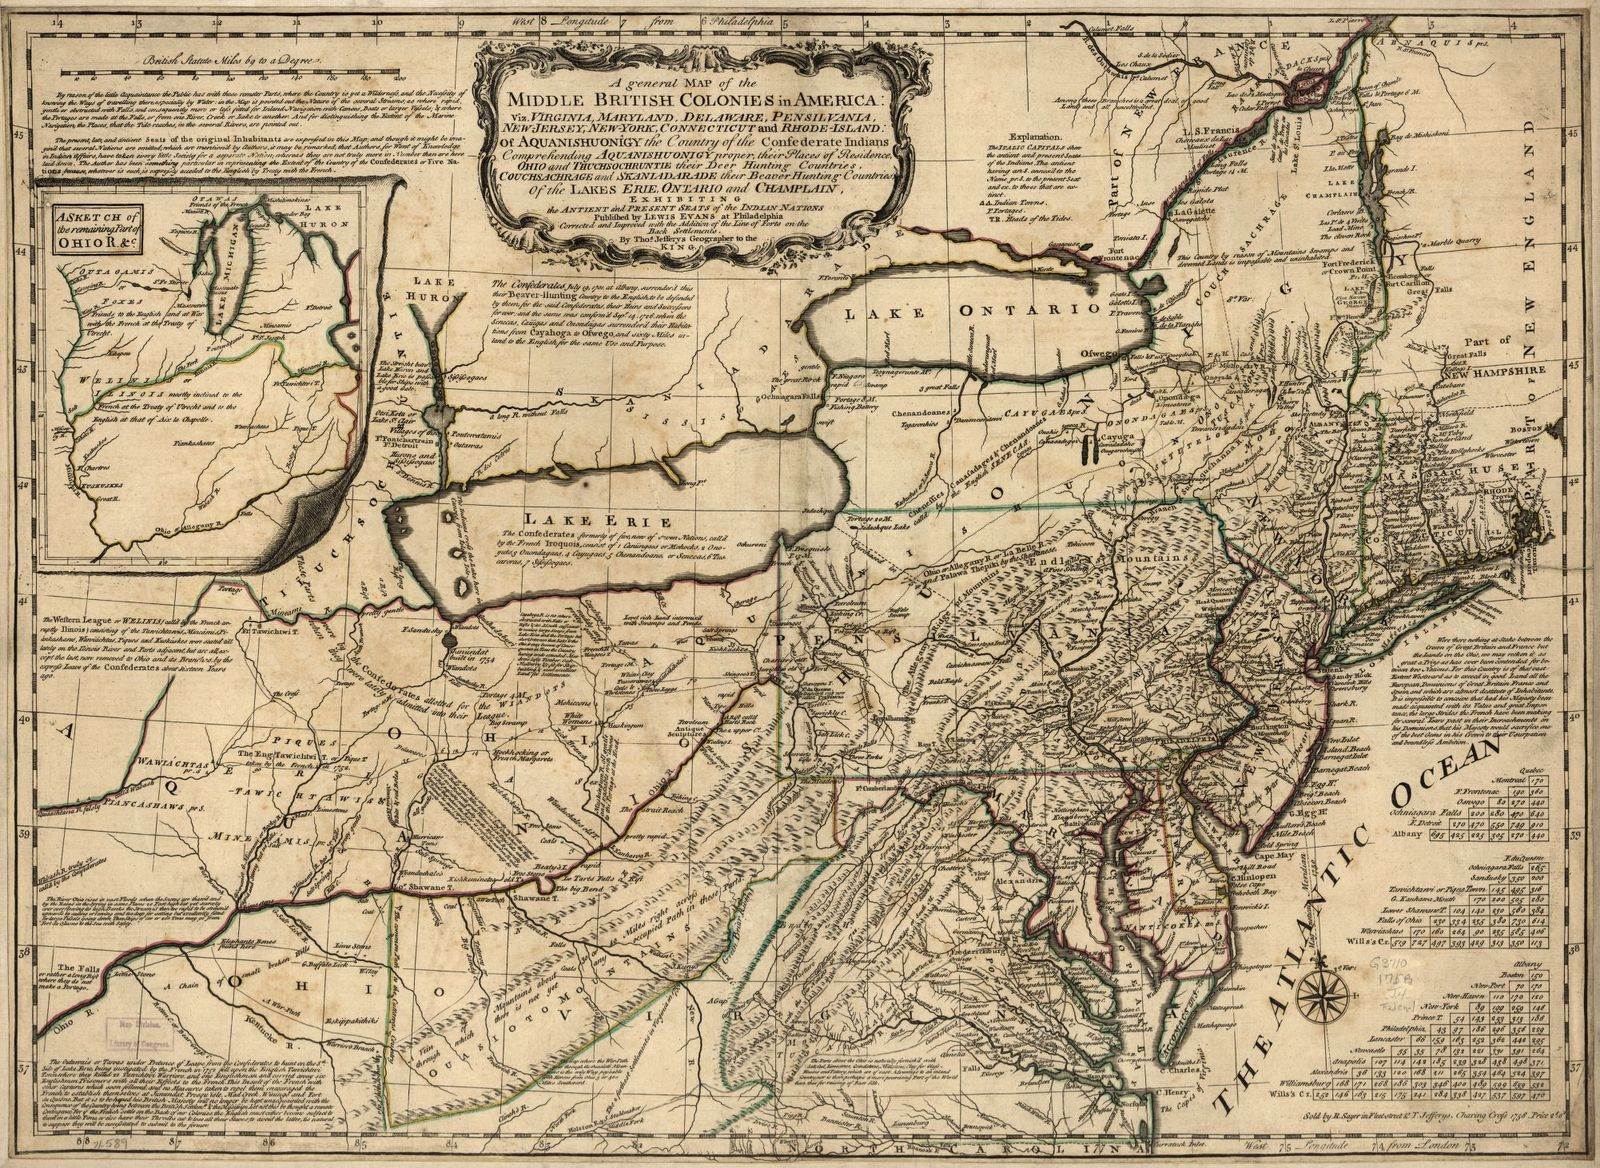 A general map of the middle British colonies in America: Viz. Virginia, Maryland, Delaware, Pensilvania, New-Jersey, New-York, Connecticut, and Rhode-Island: Of Aquanishuonîgy the country of the Confederate Indians comprehending Aquanishuonigy proper, their places of residence, Ohio and Thuchsochruntie their deer hunting countries, Couchsachrage and Skaniadarade their beaver hunting countries, of the Lakes Erie, Ontario, and Champlain, exhibiting the antient and present seats of the Indian nations.